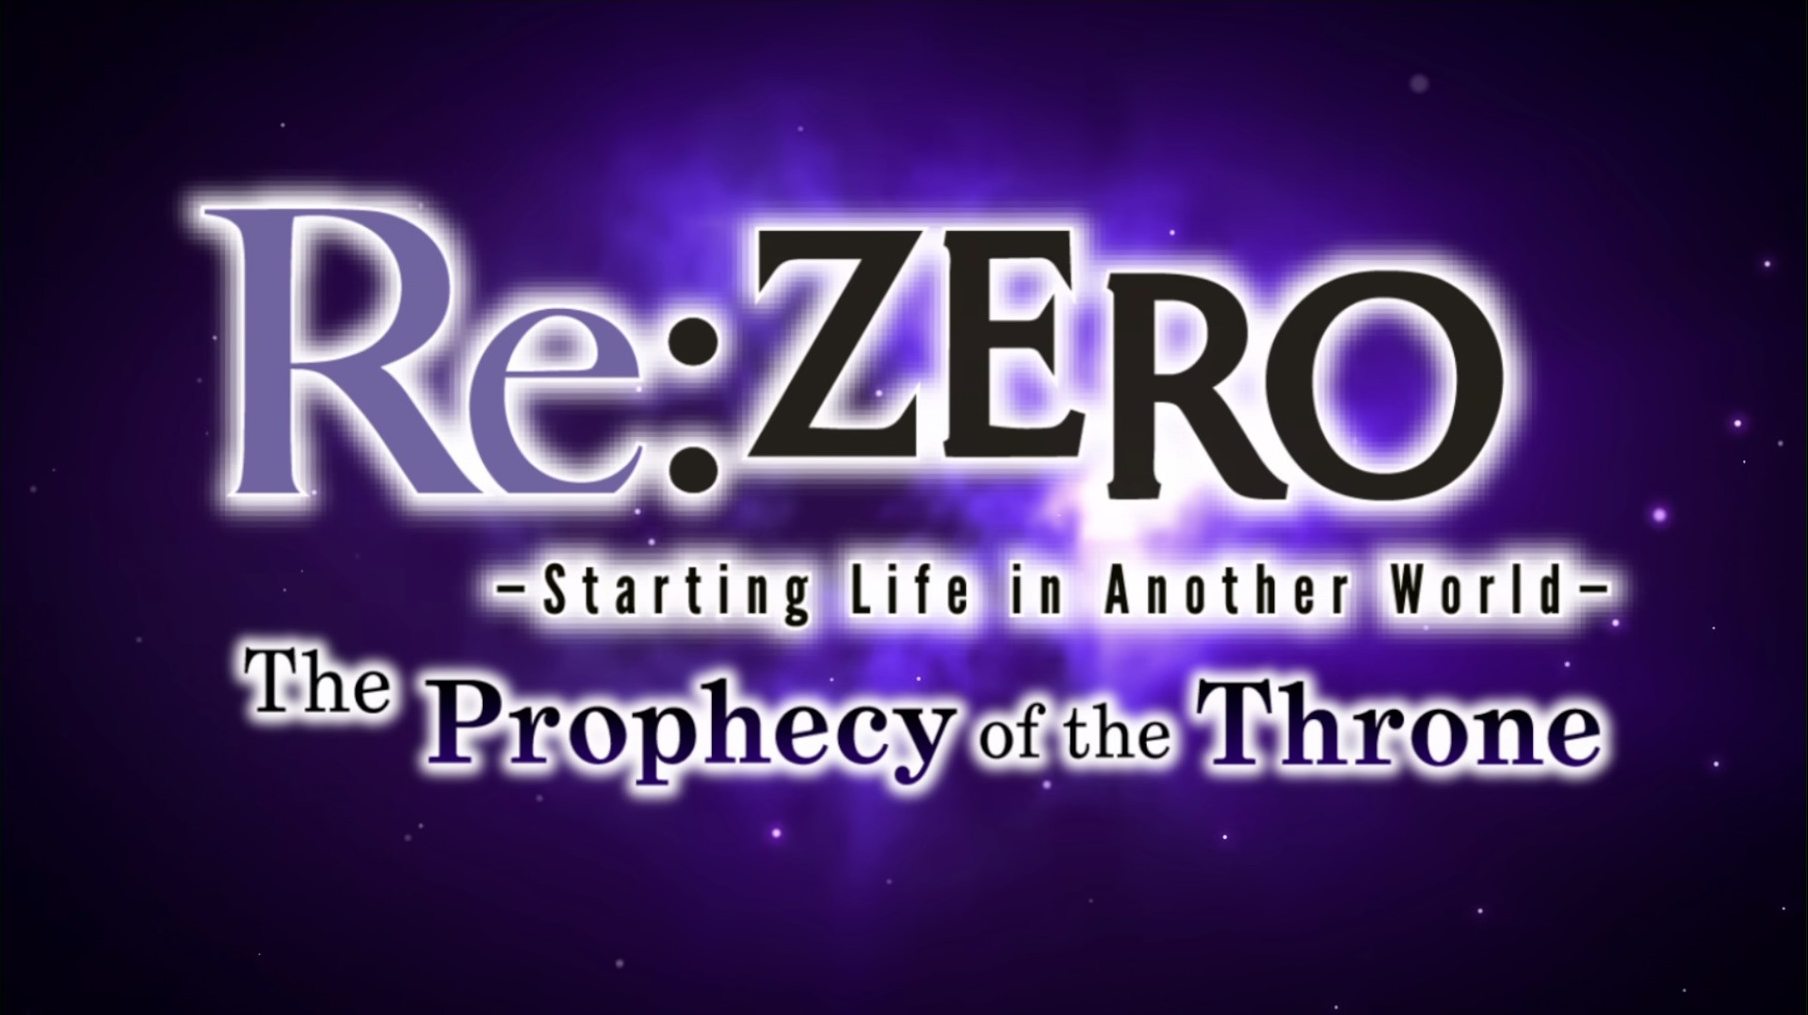 re_zero_prophecy_of_the_throne_splash Re:Zero ~Starting Life in Another World~ The Prophecy of the Throne - PC (Steam) Review